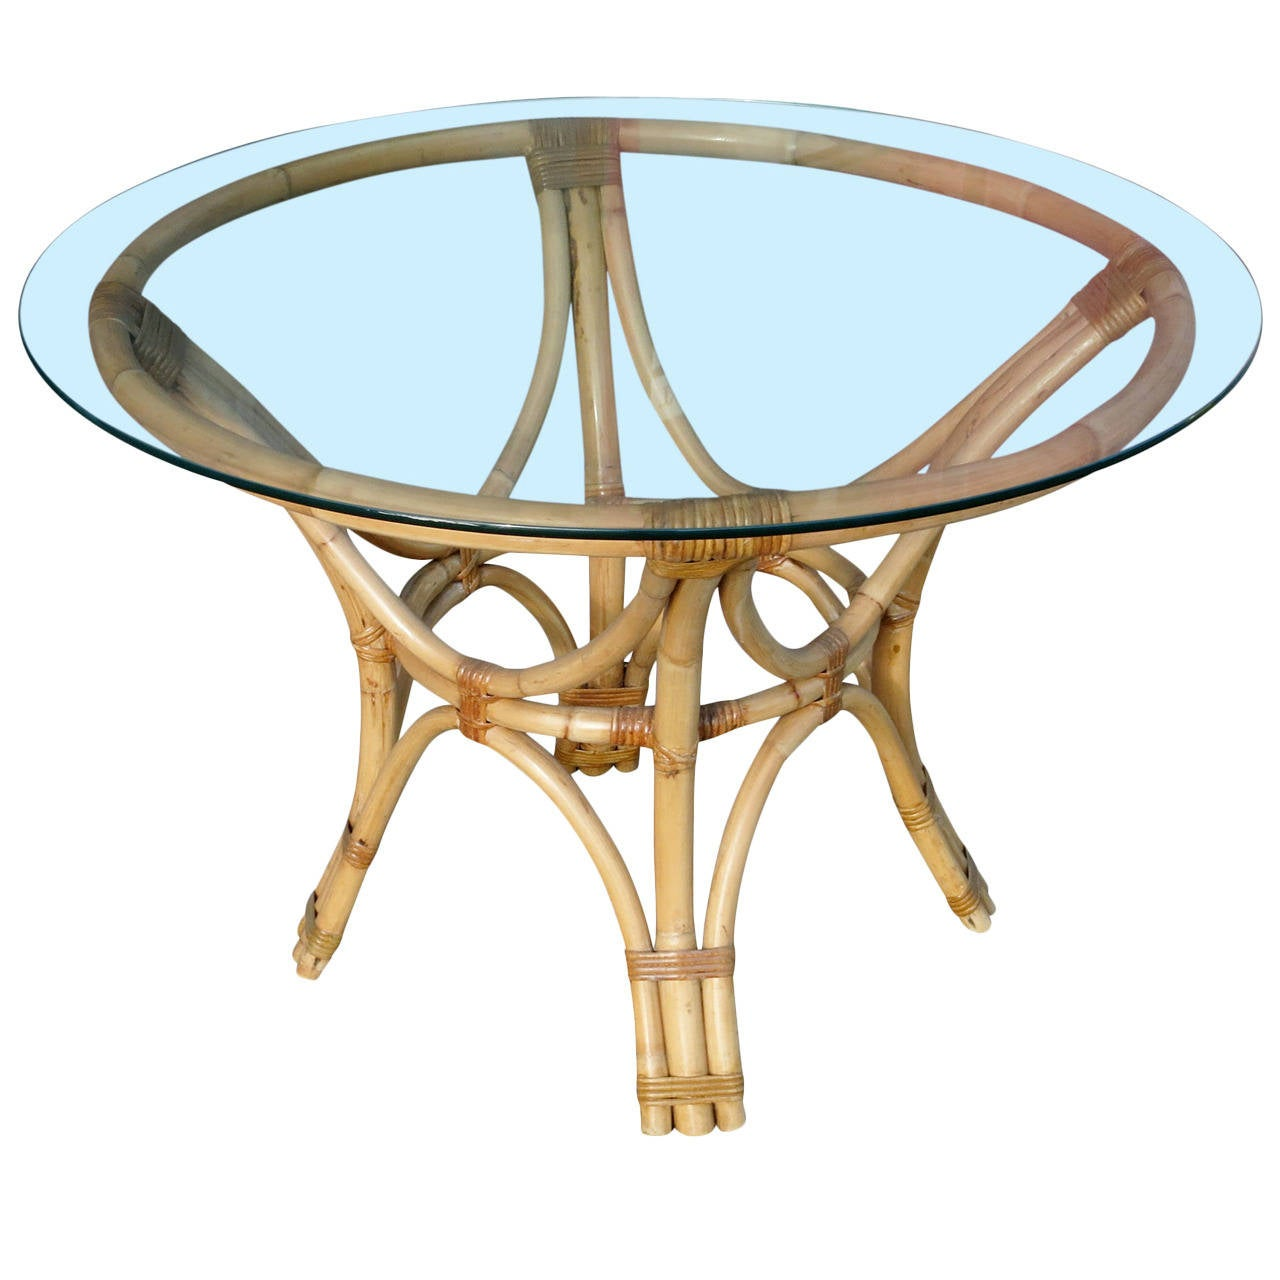 Rattan Bent Wood Dining Table with Round Glass Top at 1stdibs : 1924942l from www.1stdibs.com size 1280 x 1280 jpeg 96kB